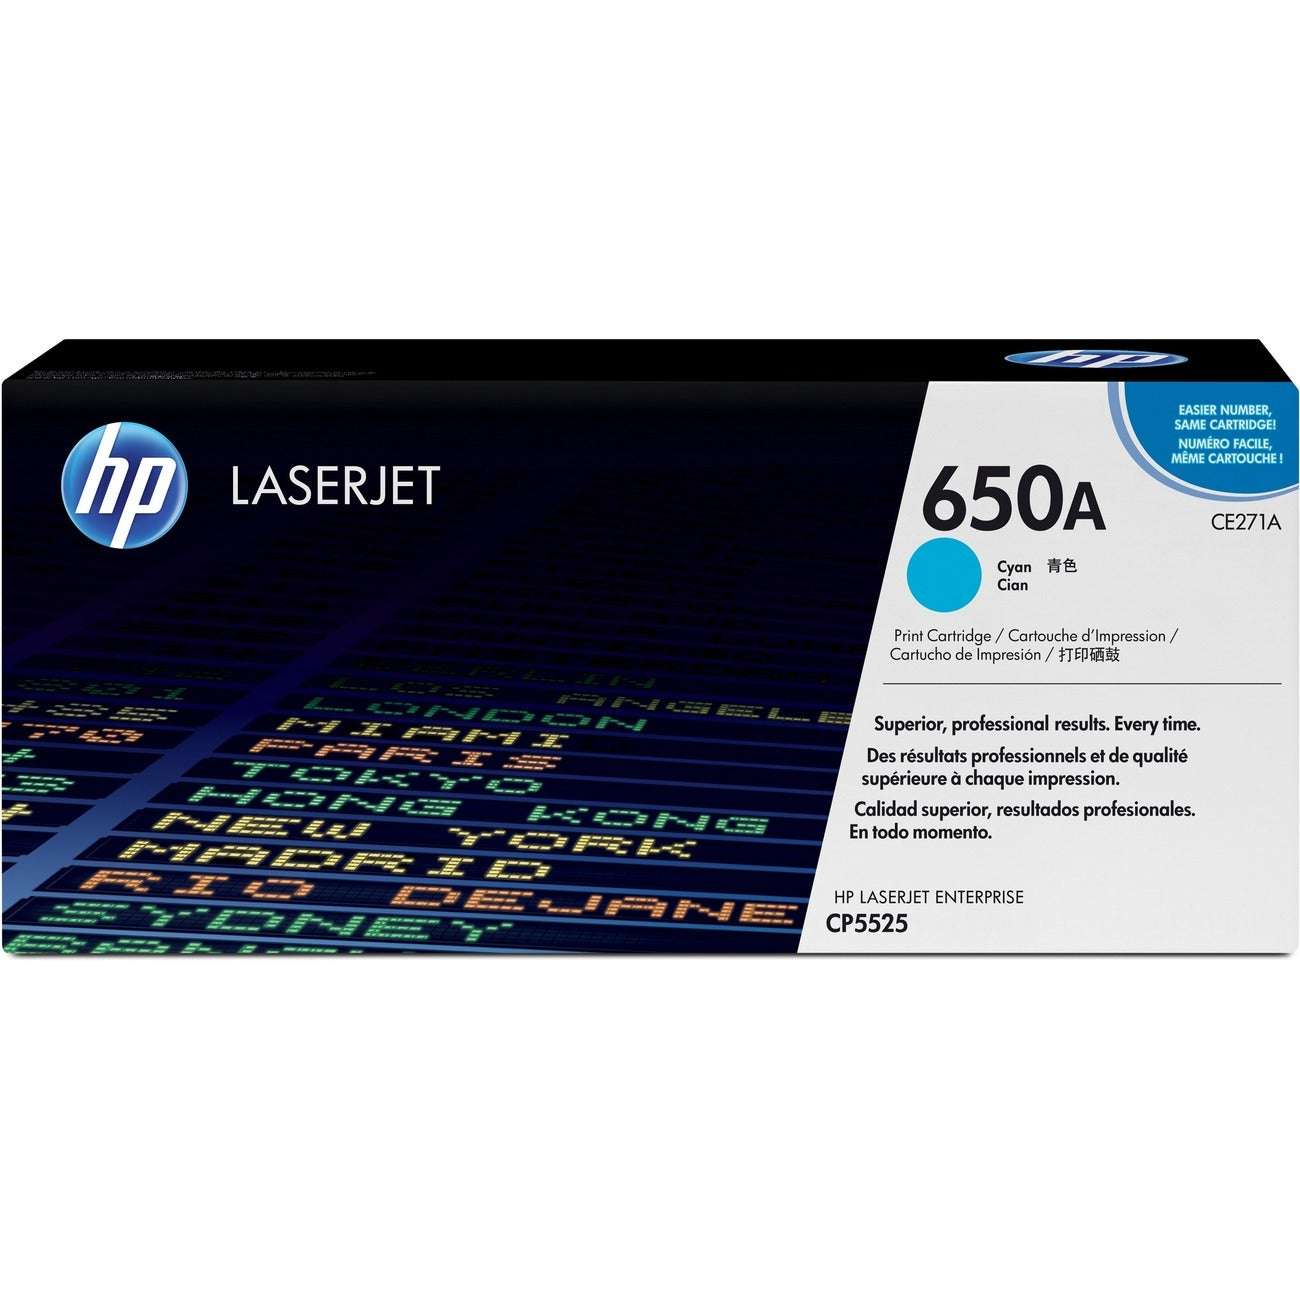 HP CE271A Toner Cartridge